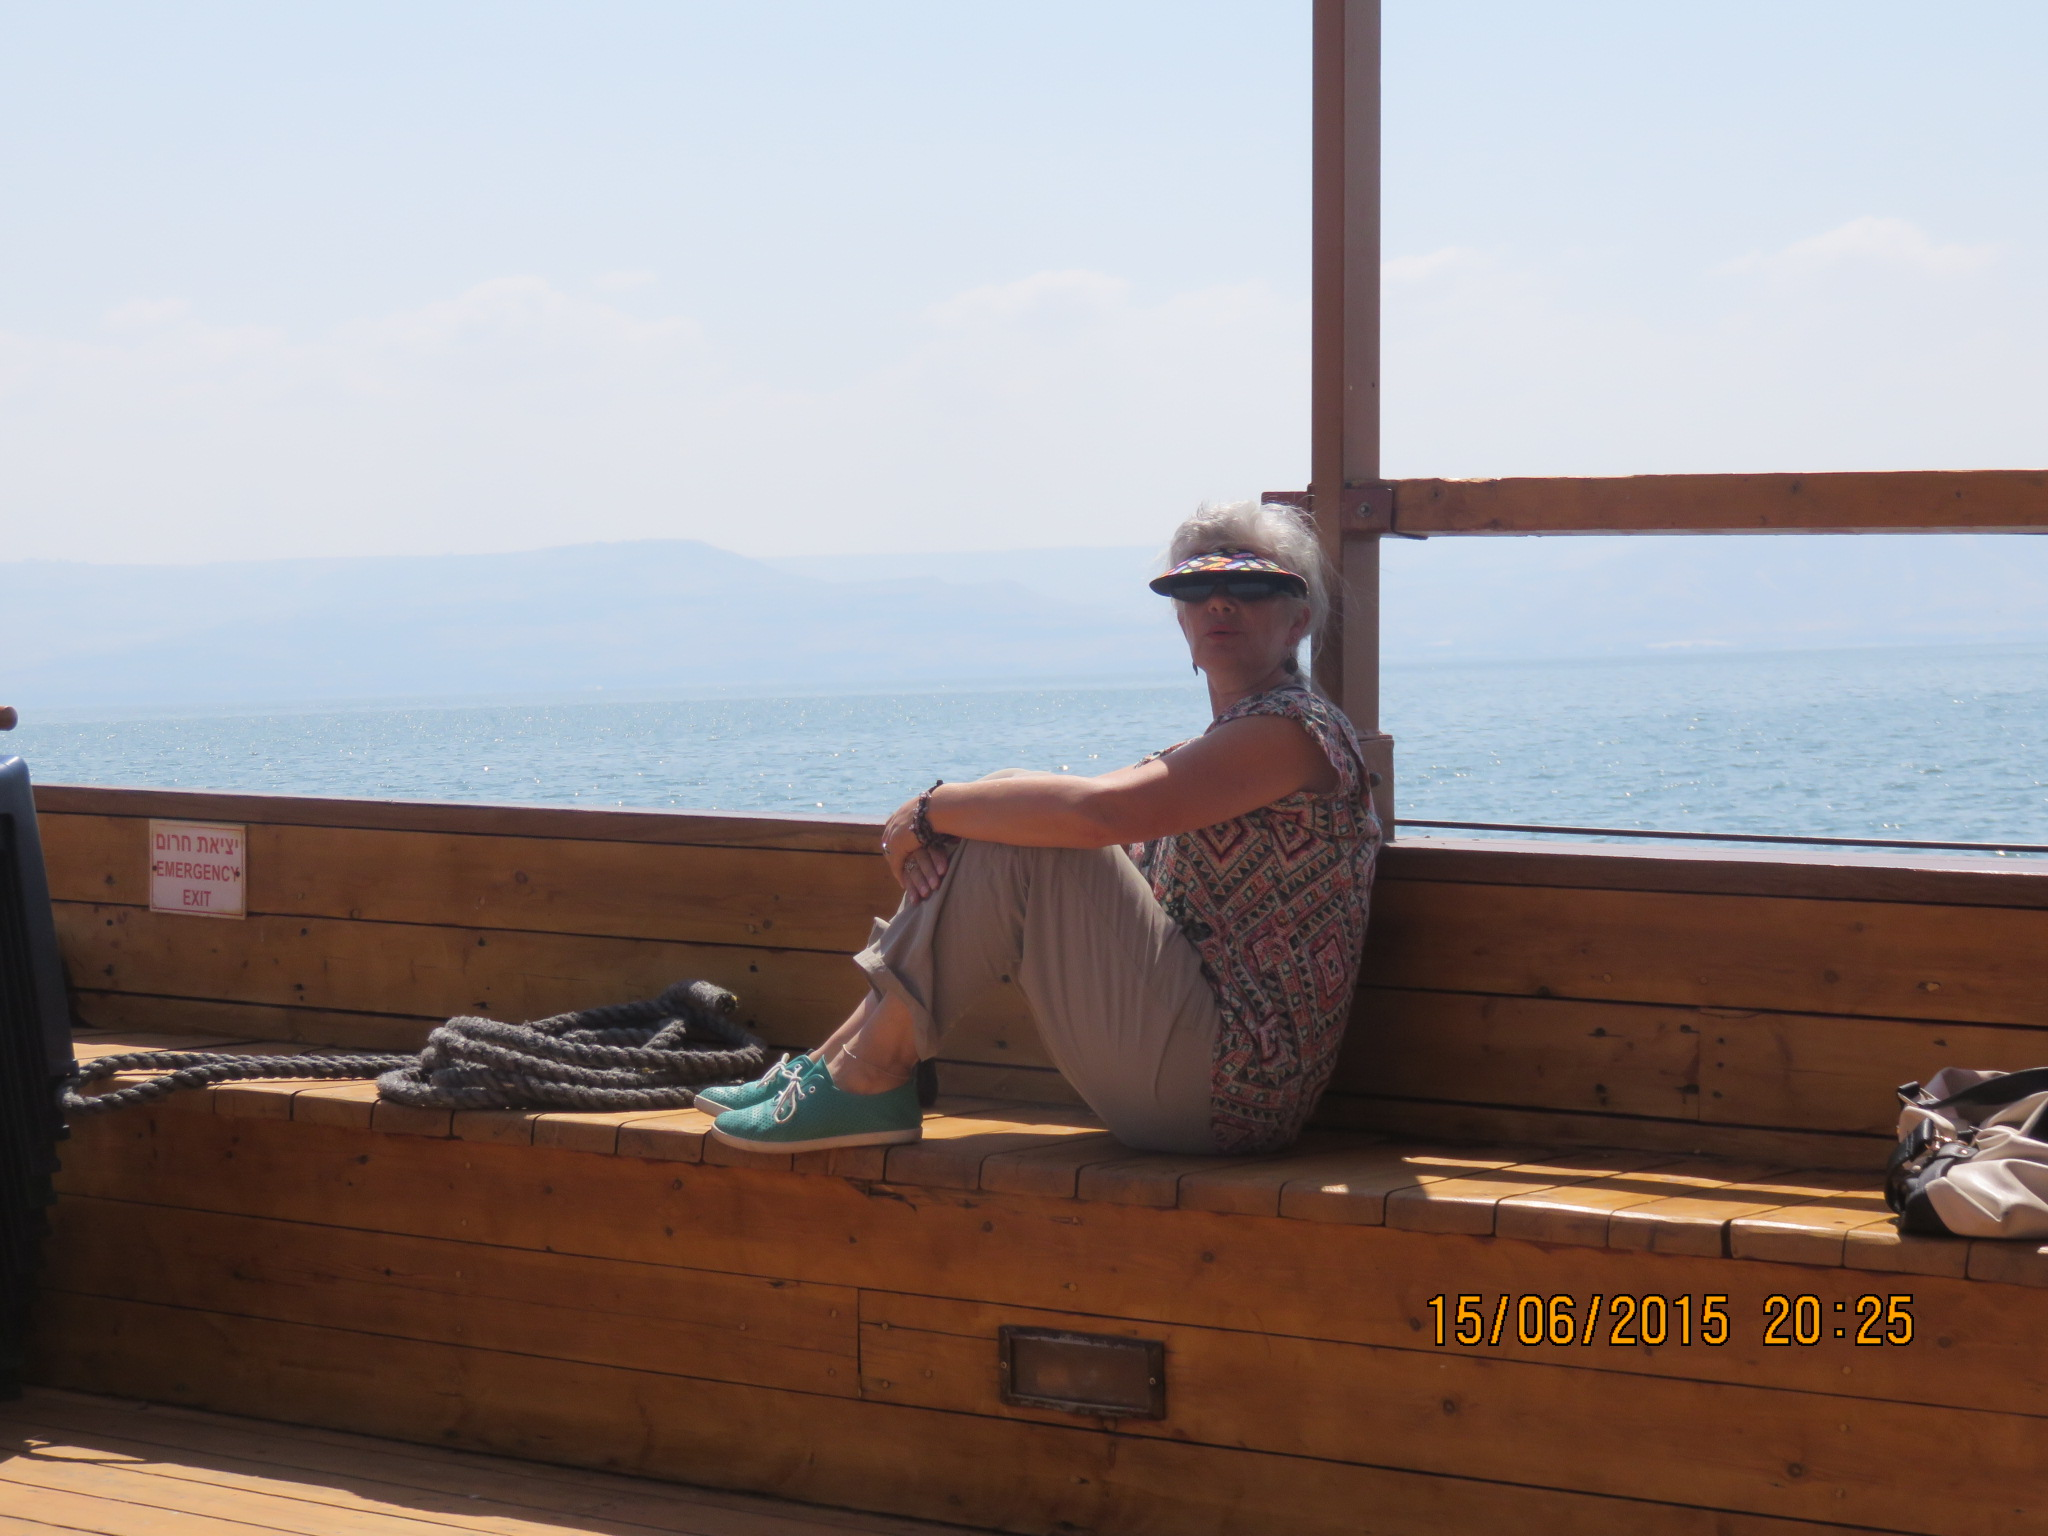 On the Galilee